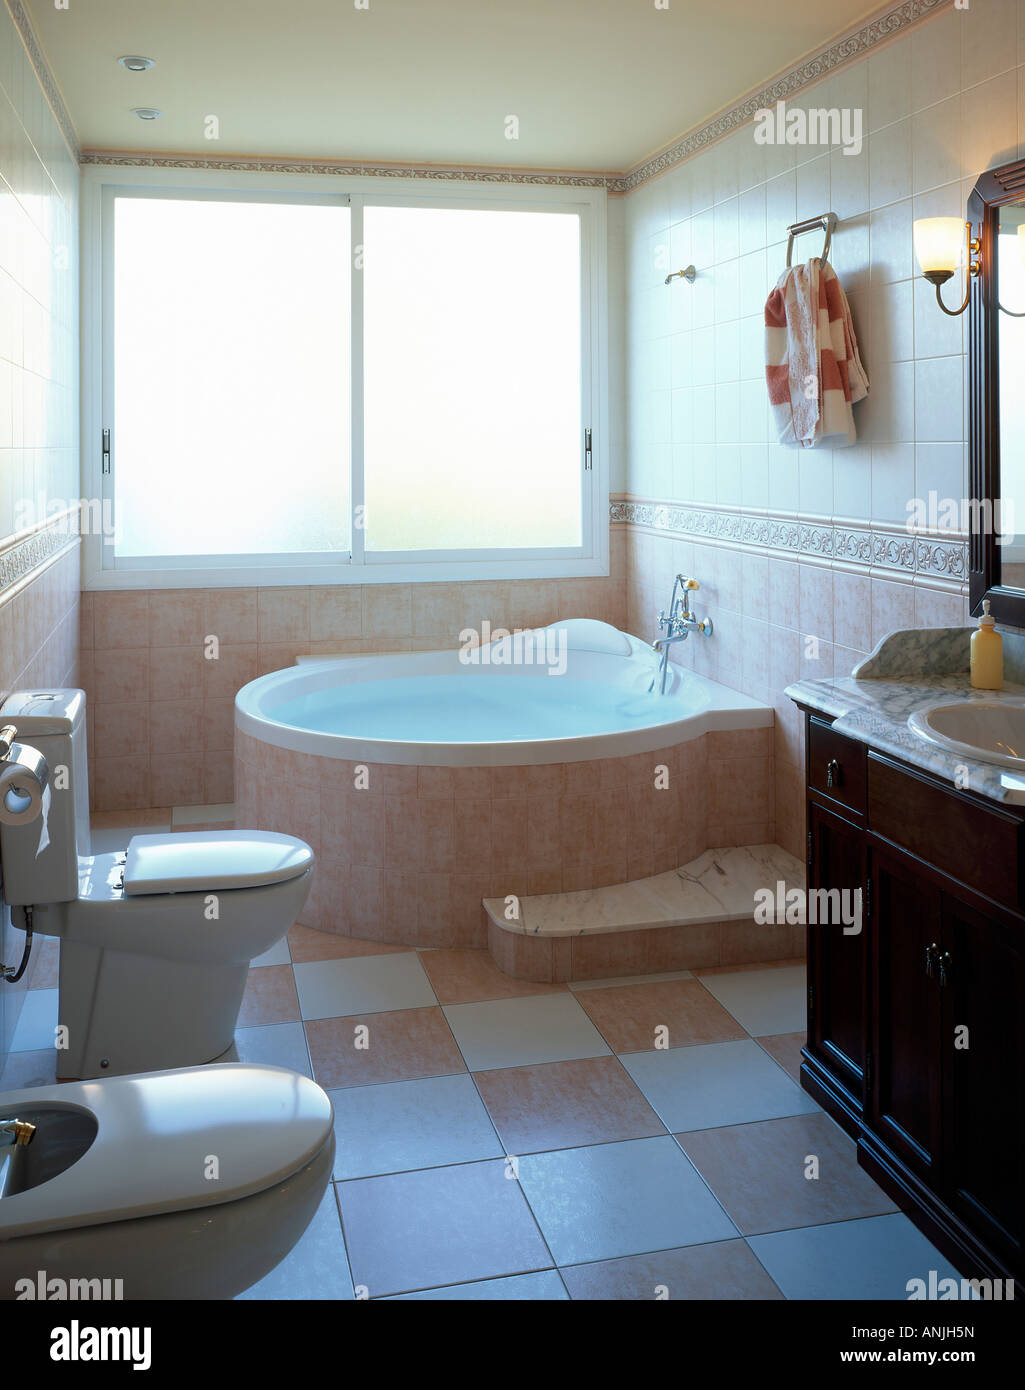 Elegant bathroom with tile surround bath tub commode and tiled floor ...